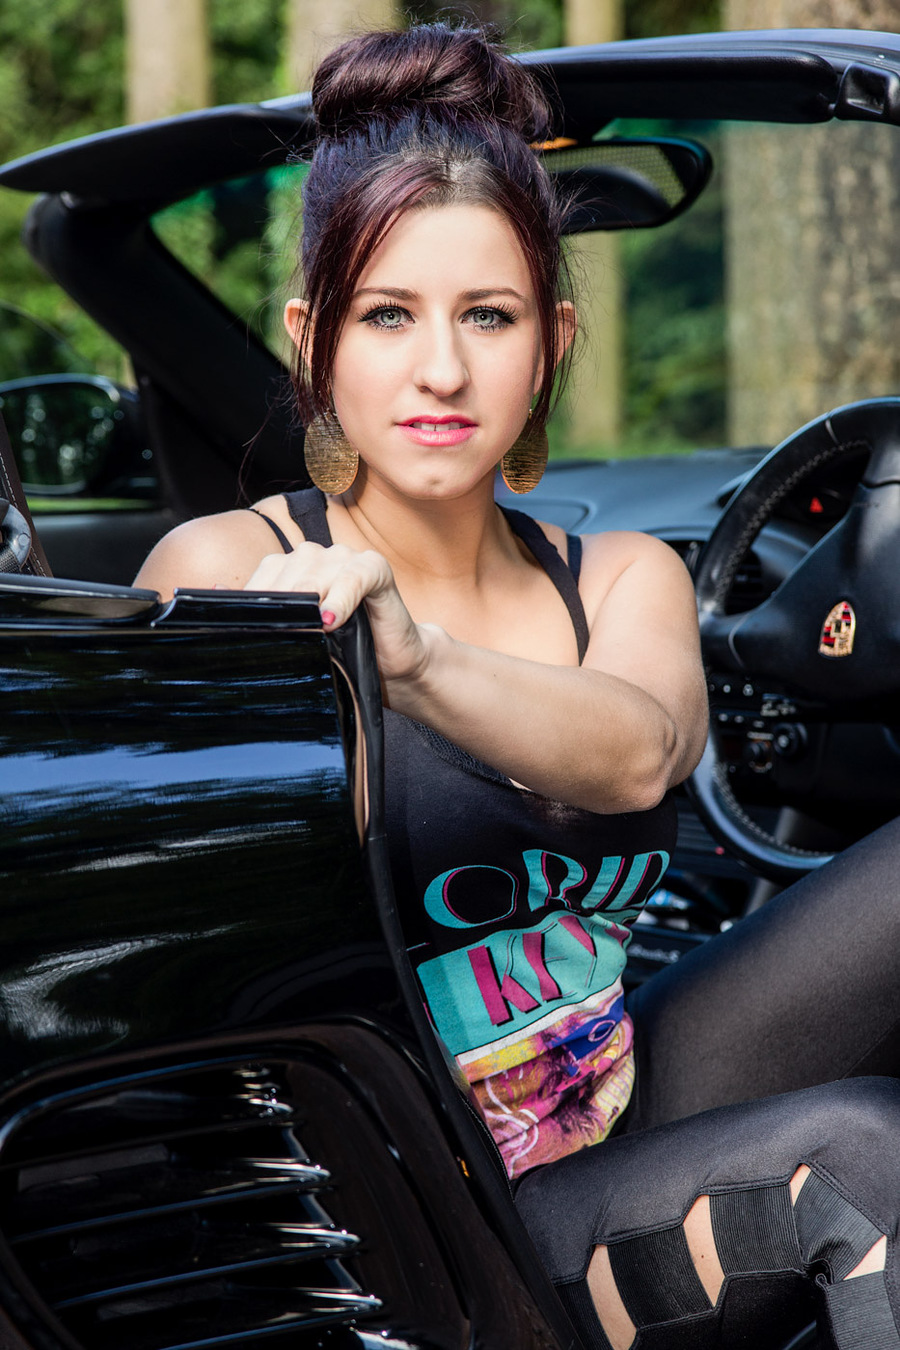 Photography by Bob Hardy, Model Carly / Uploaded 17th April 2015 @ 04:19 PM